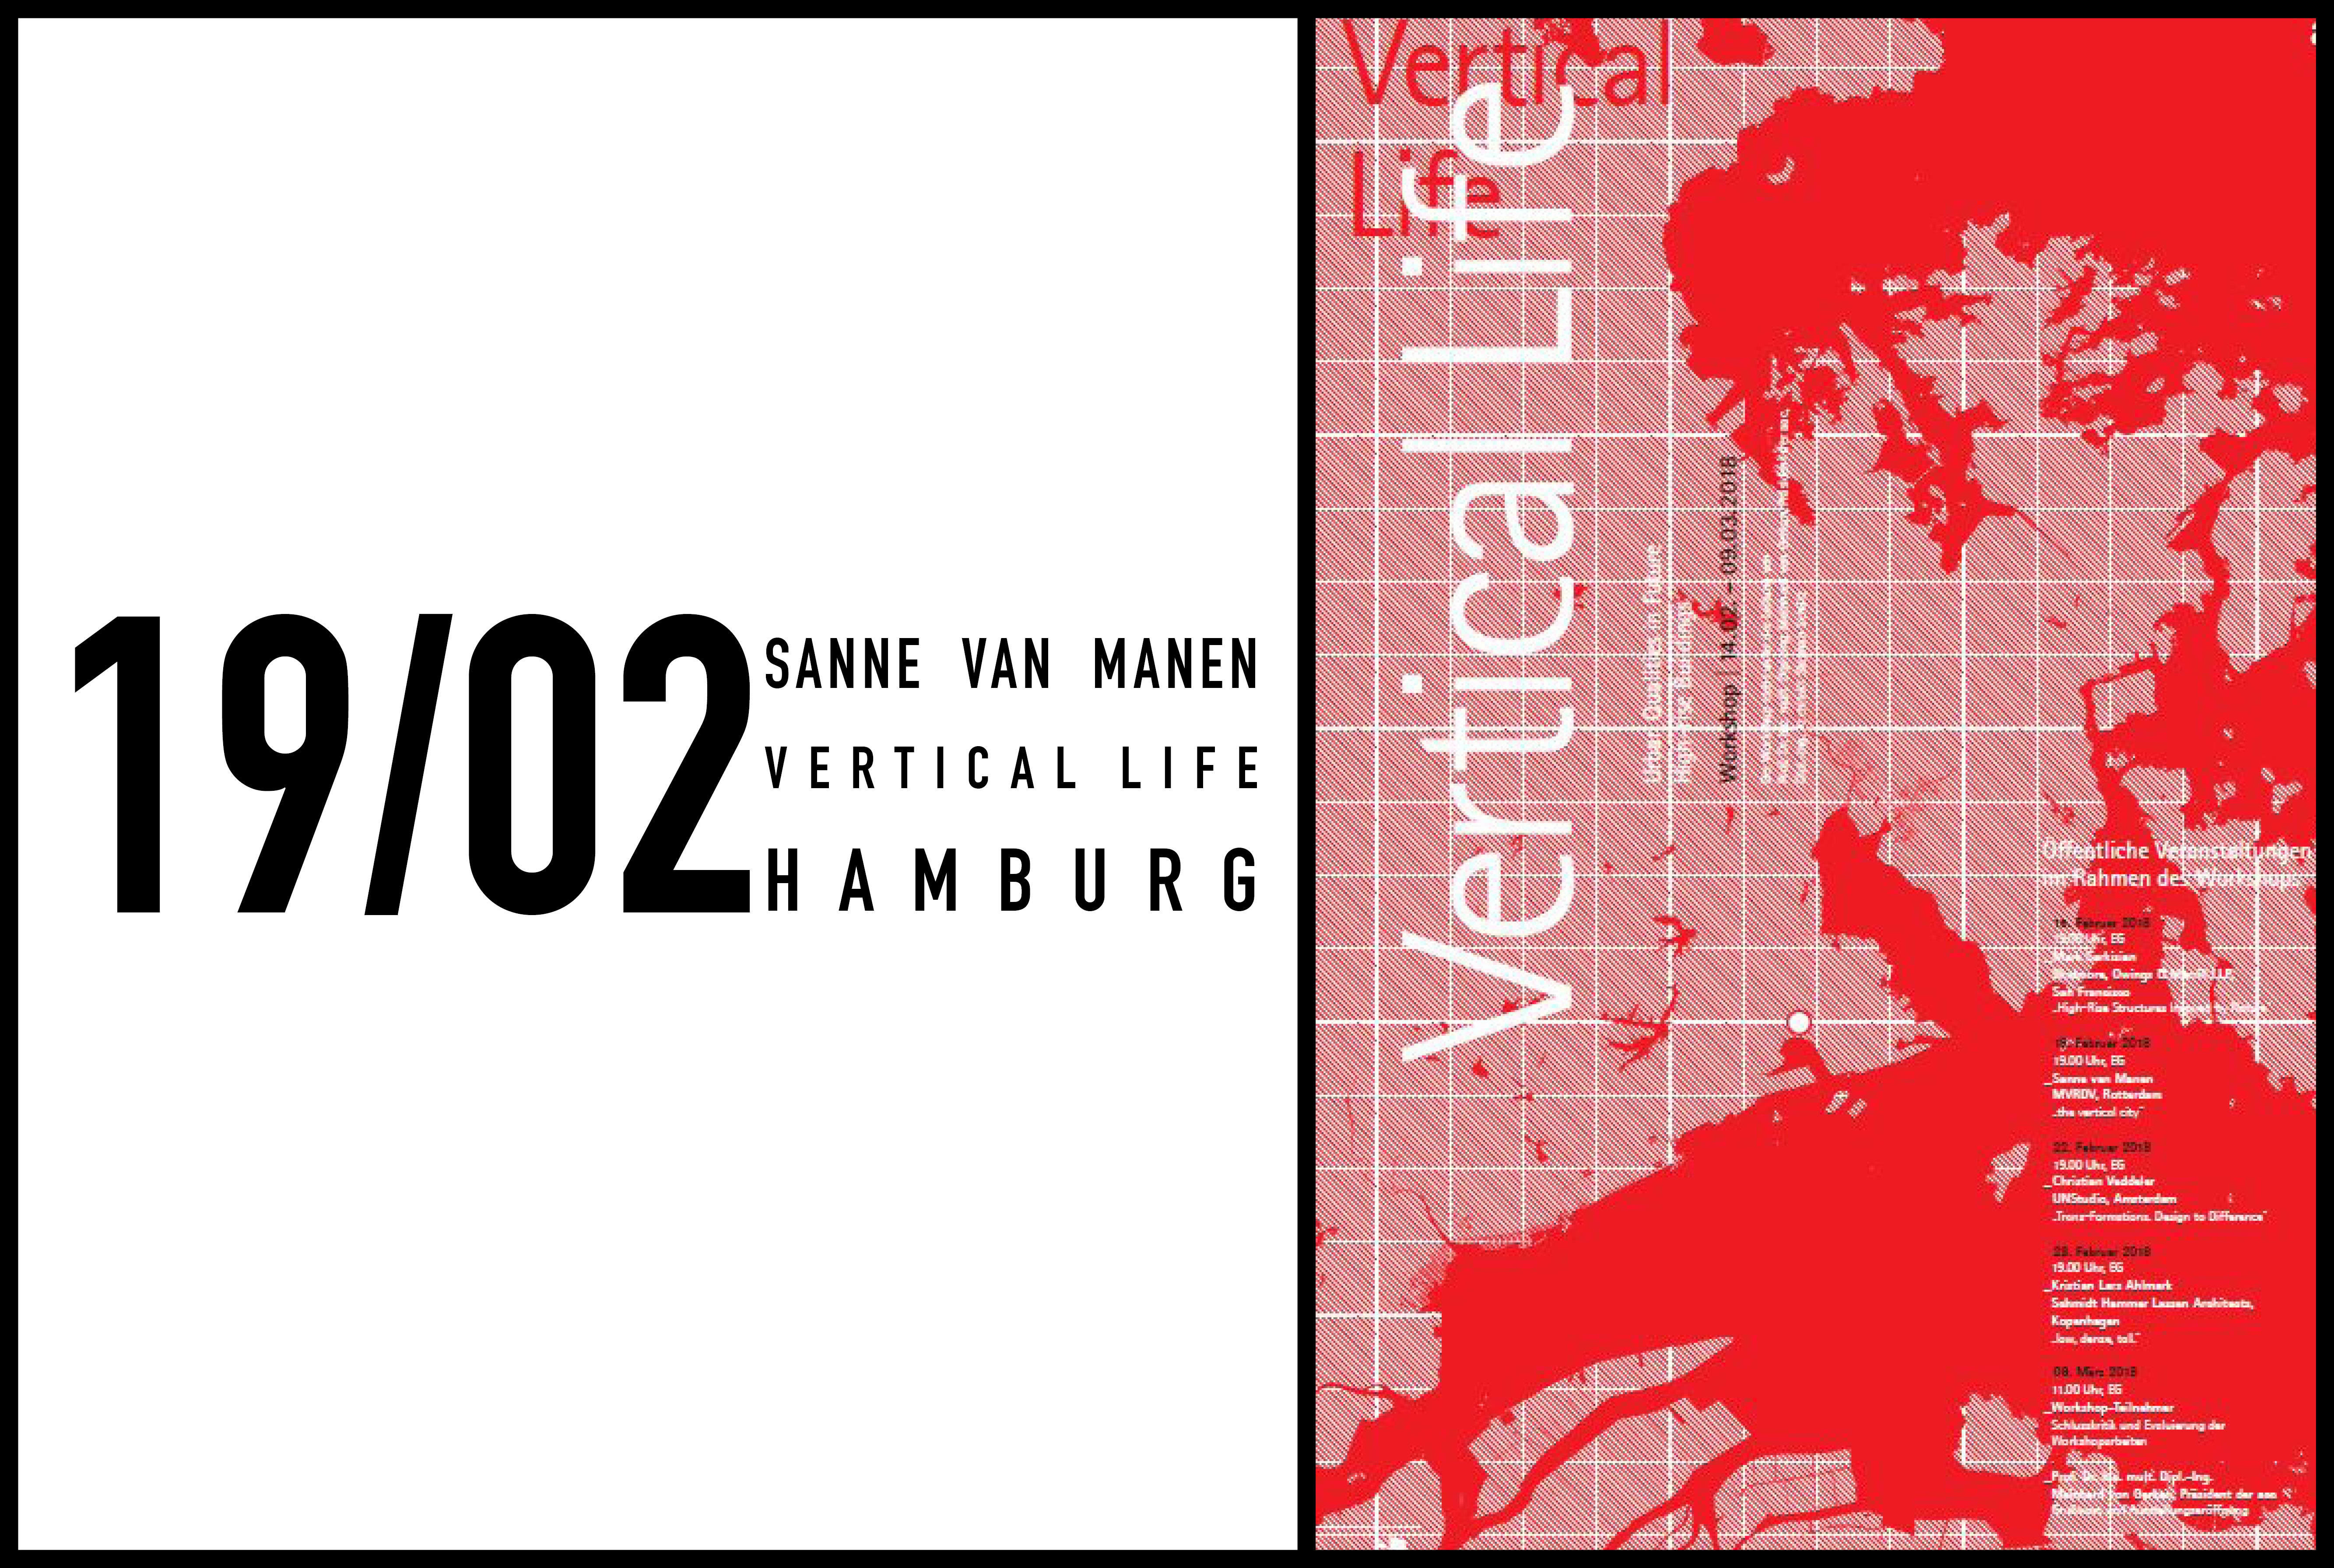 Sanne van Manen to speak at Vertical Life in, 19 February in Hamburg, Germany